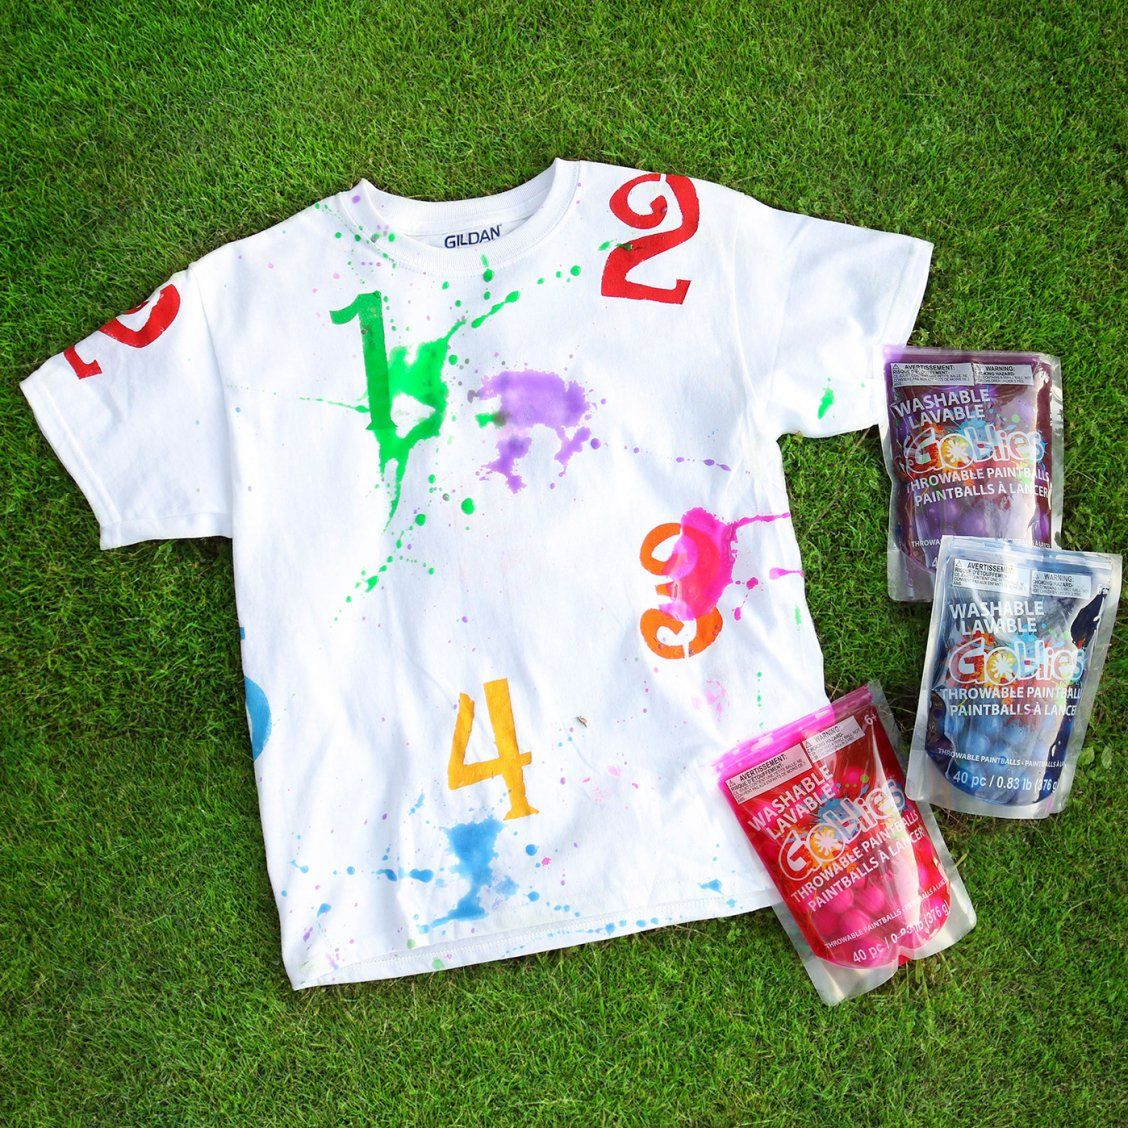 10 Wonderful T Shirt Decorating Ideas For Kids tulip kids t shirt form kids crafts arts crafts for teens 2020